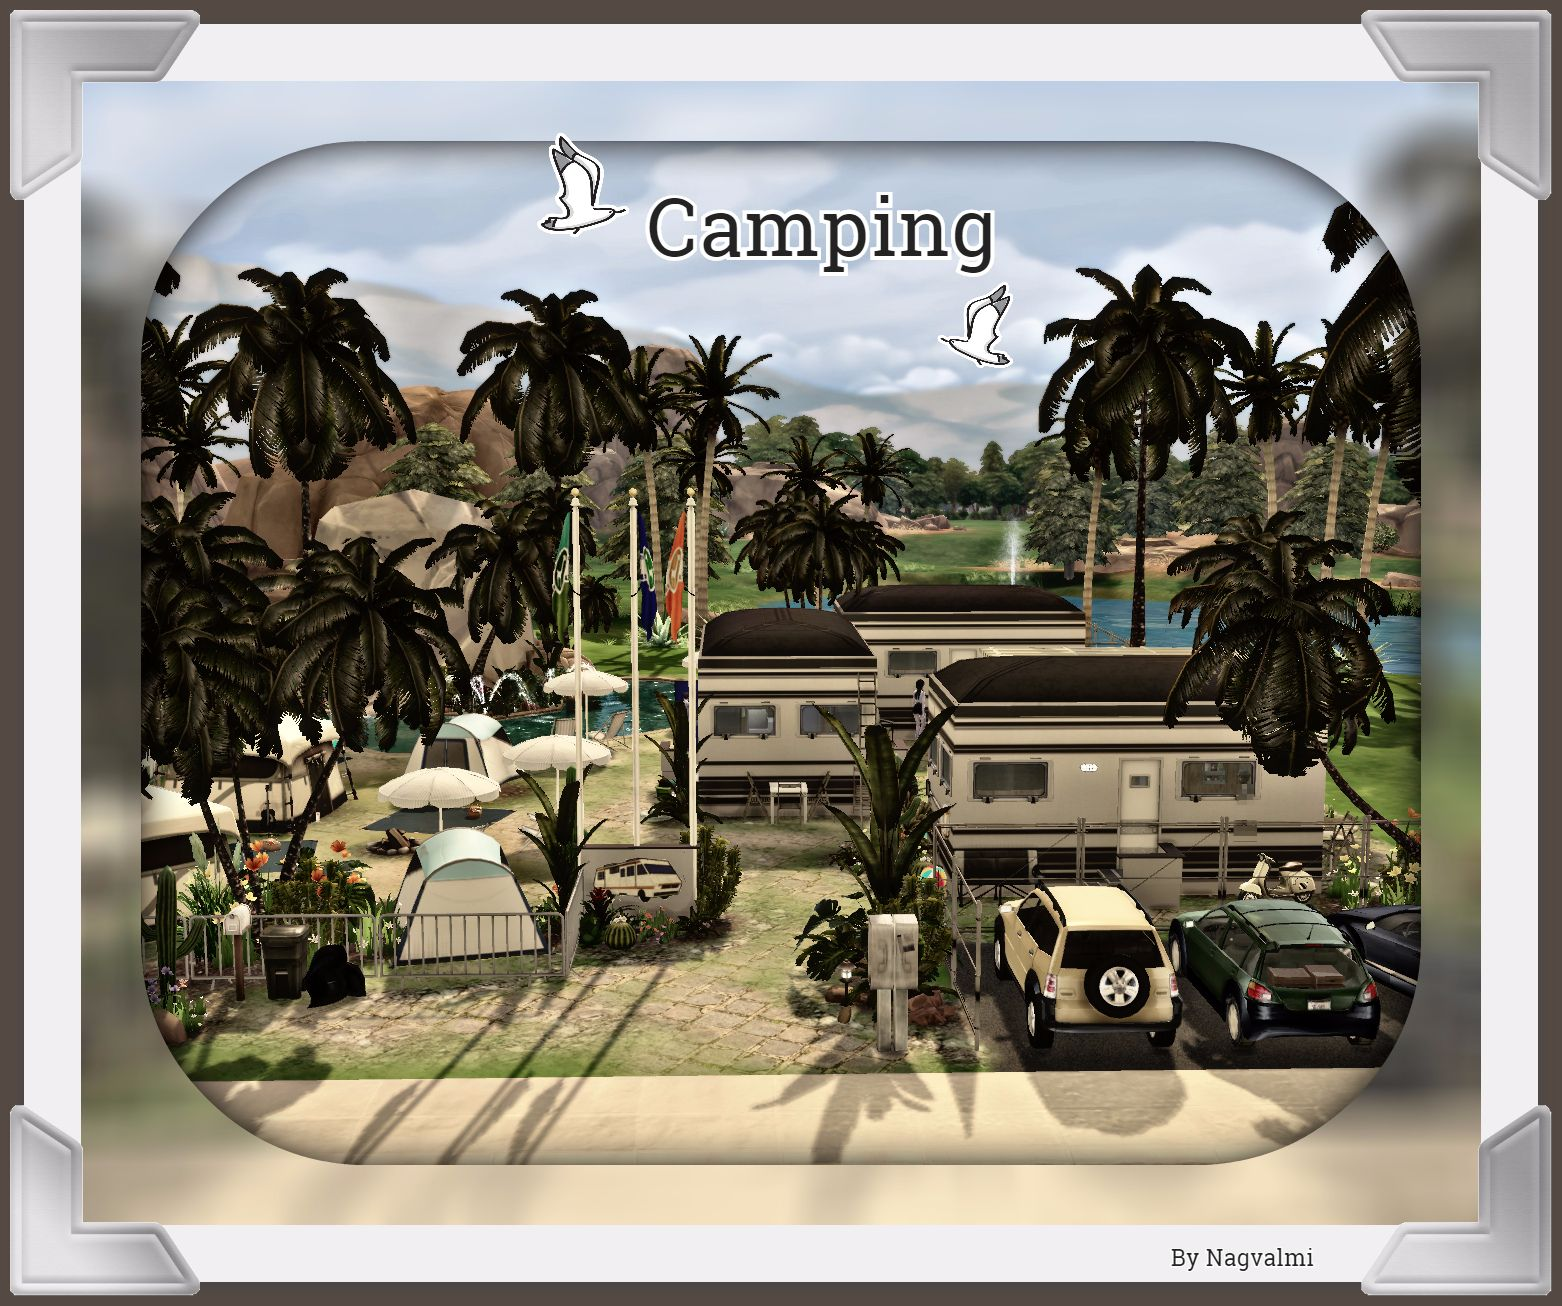 Camping by Nagvalmi